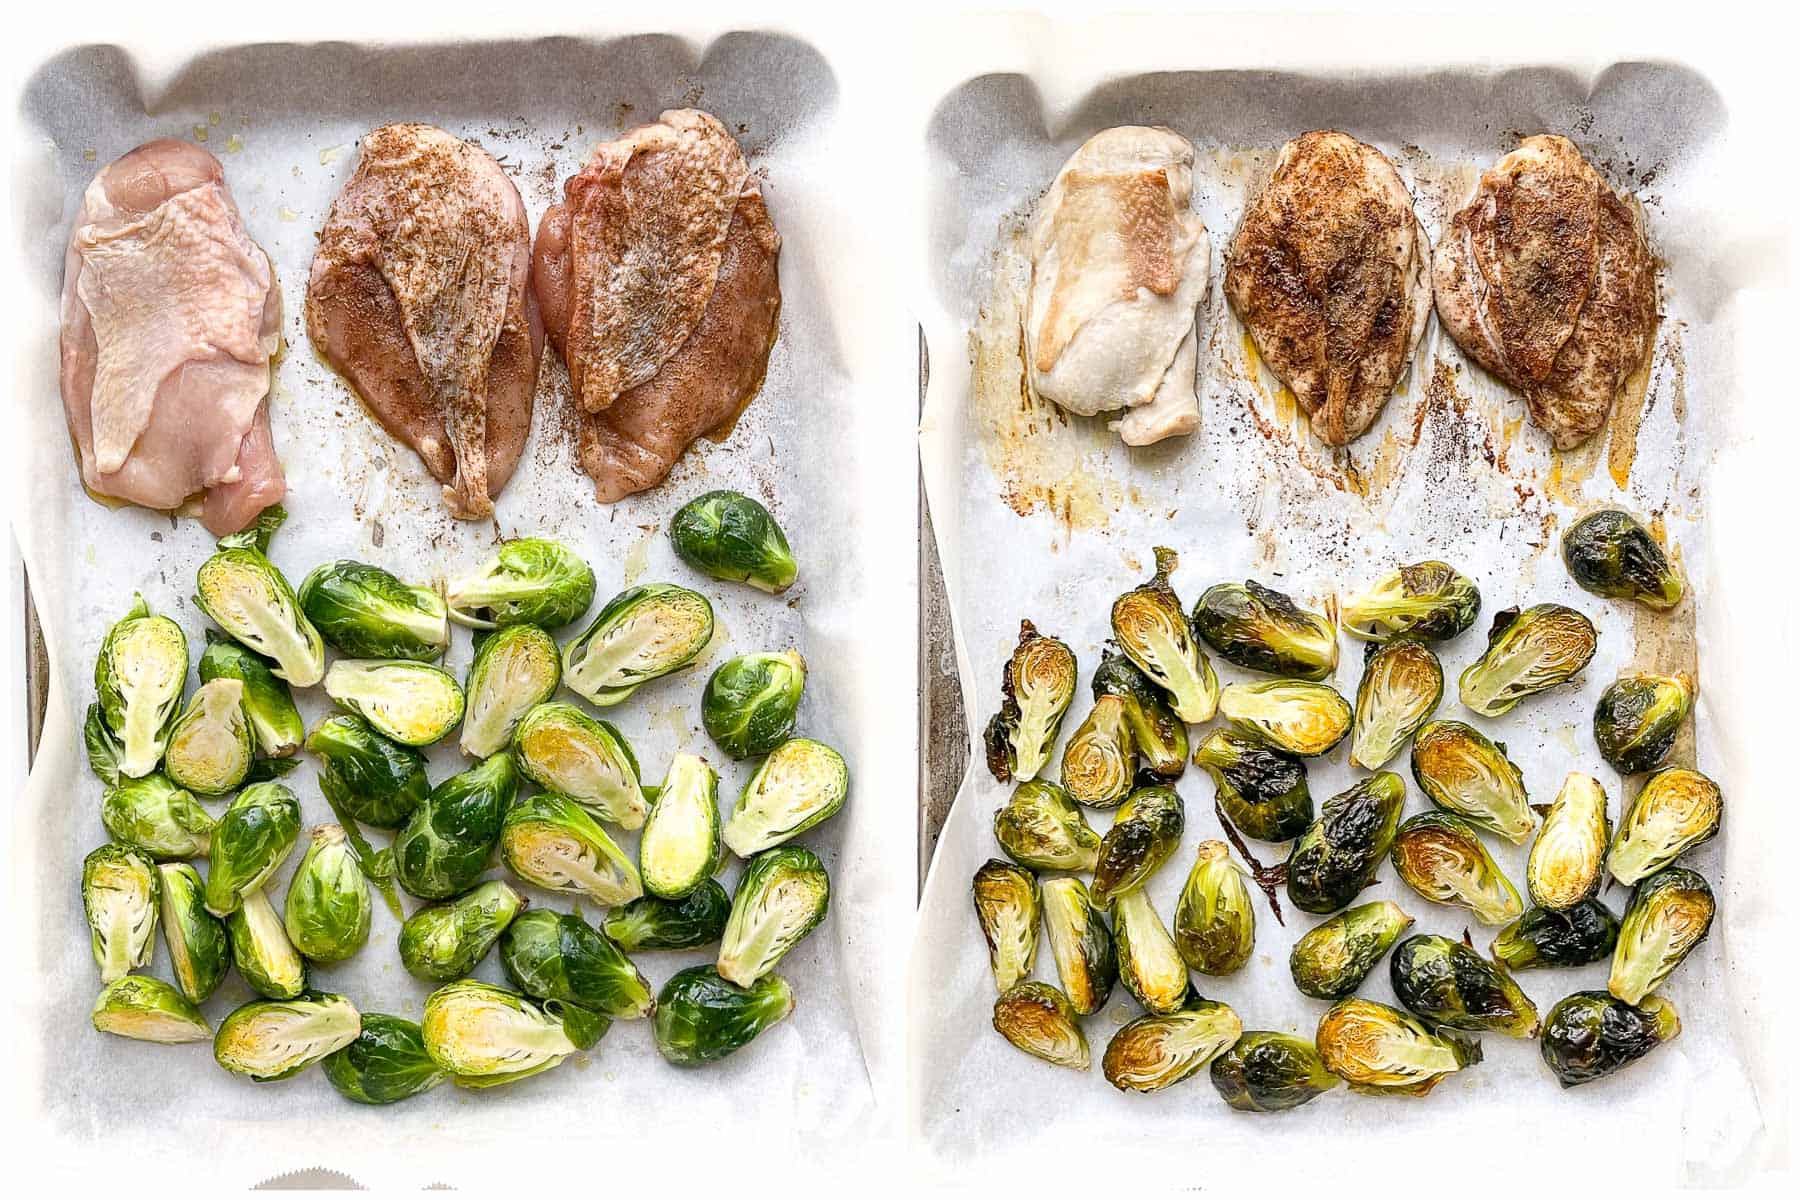 jerk seasoned chicken on a sheet pan with brussels sprouts